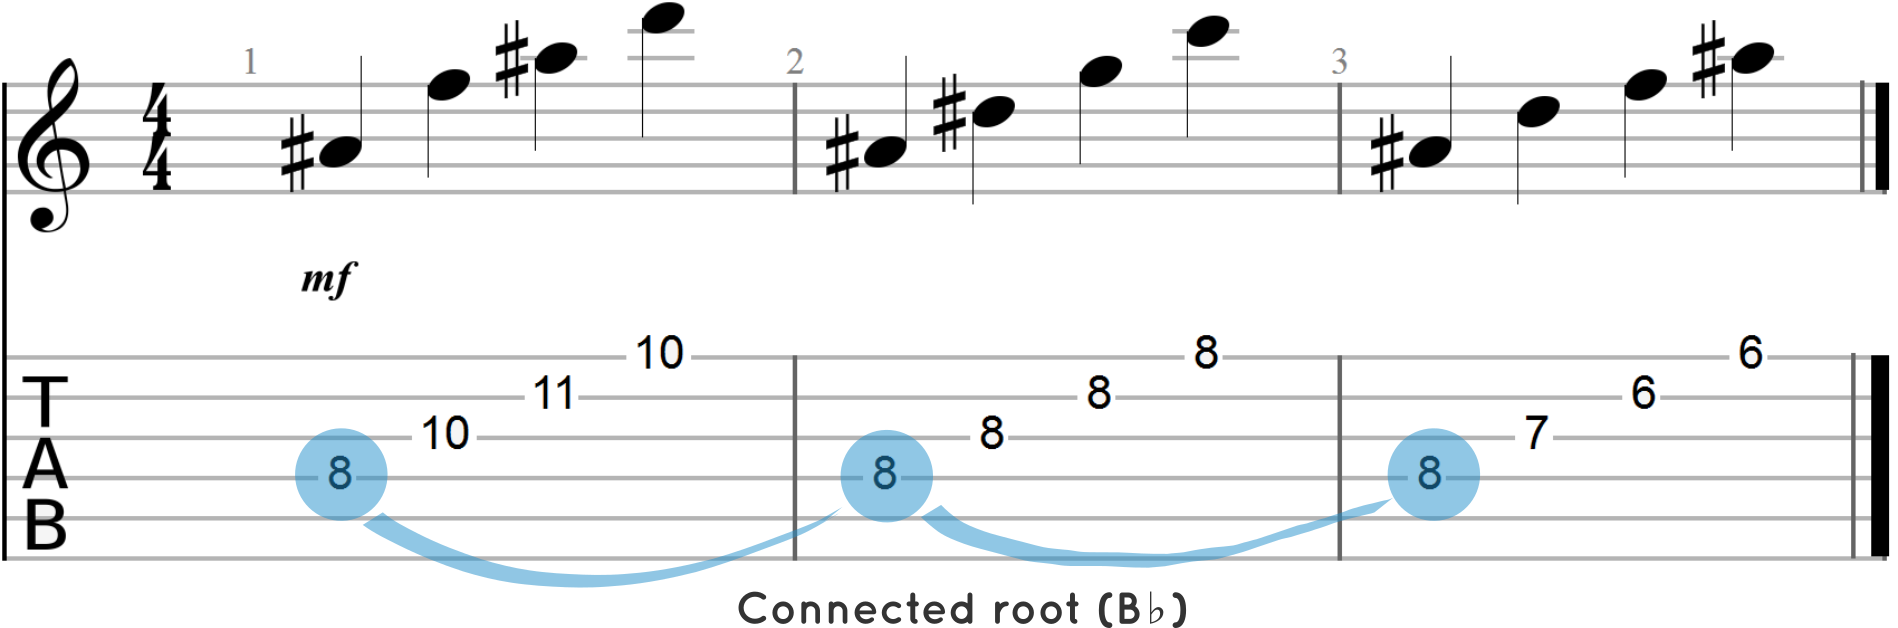 Arpeggiated Chord Progressioin with Anchored Root Note